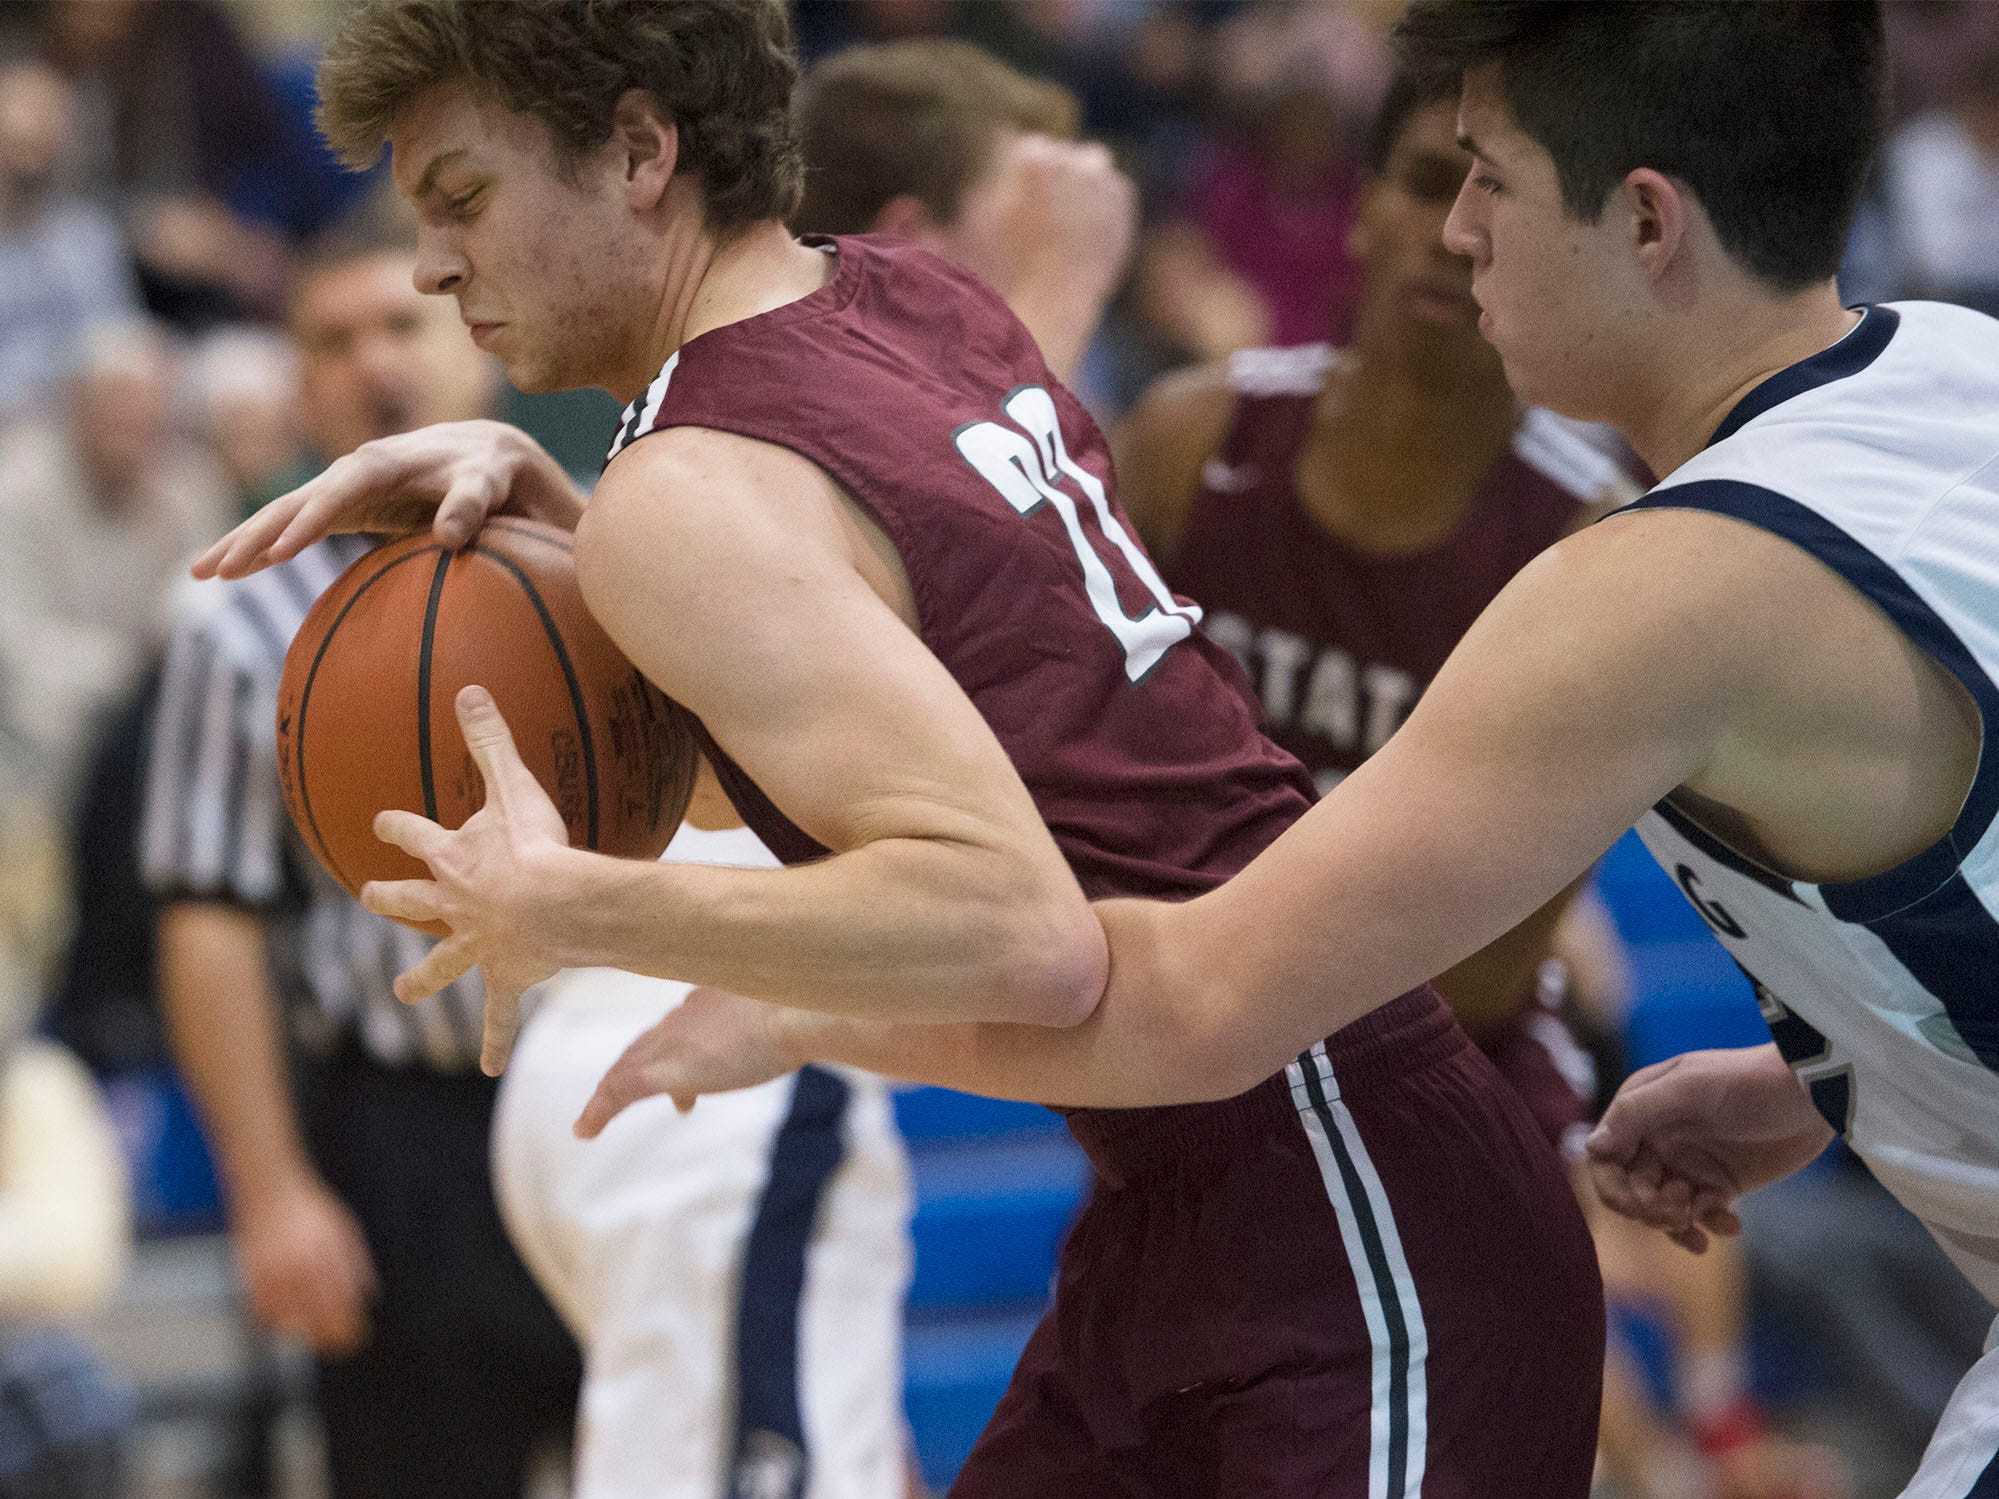 Chambersburg dropped a buzzer beater 42-40 to State College during District 3 basketball, Friday, Dec. 14, 2018.